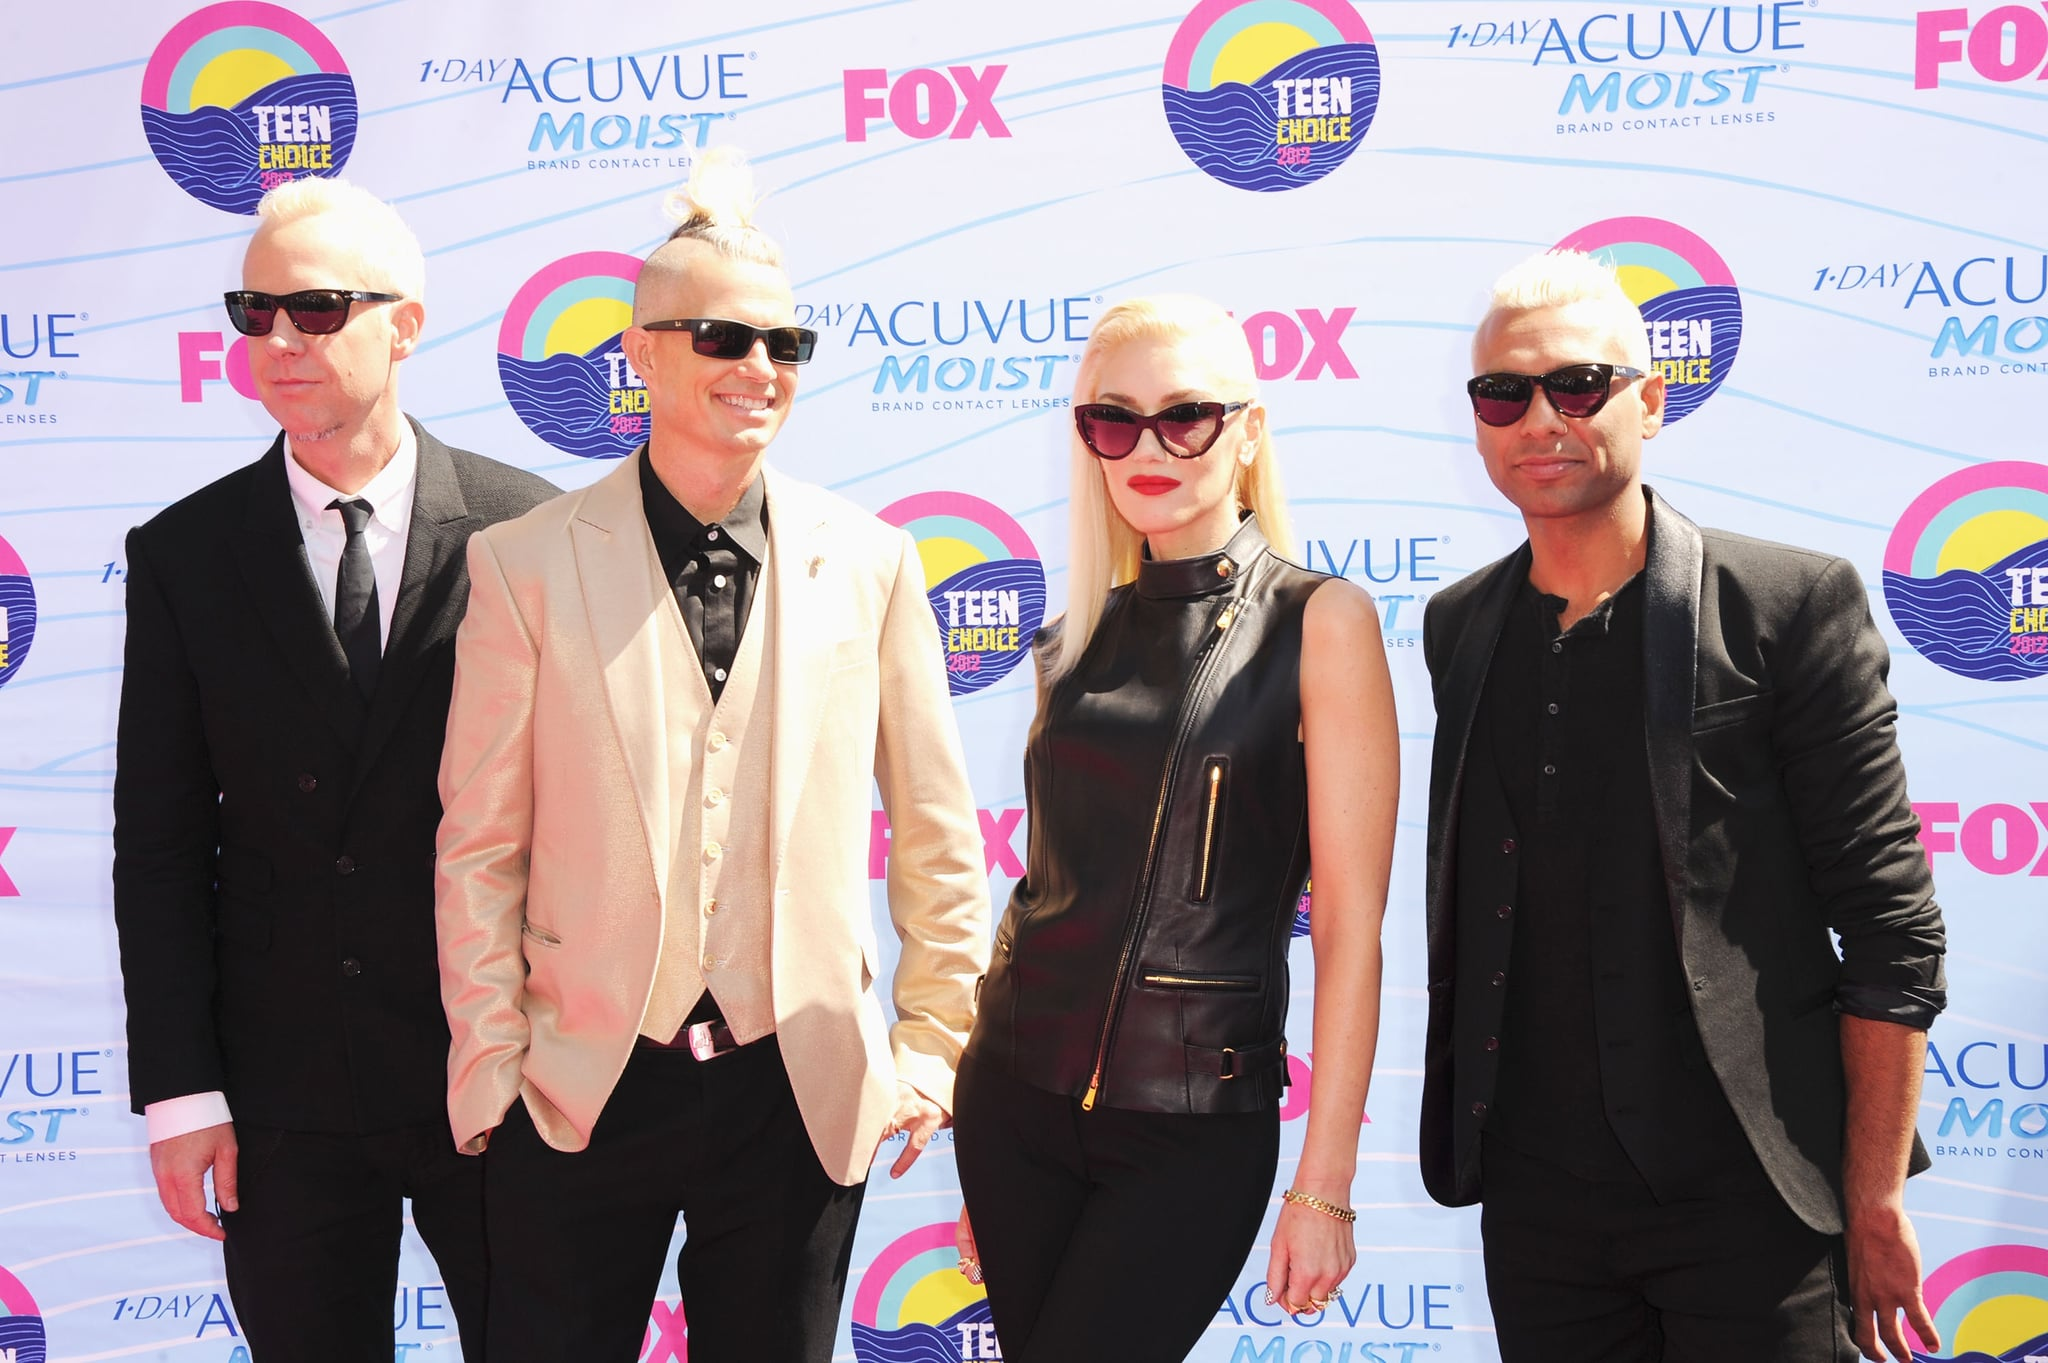 Tom Dumont, Adrian Young, Gwen Stefani, and Tony Kanal hit